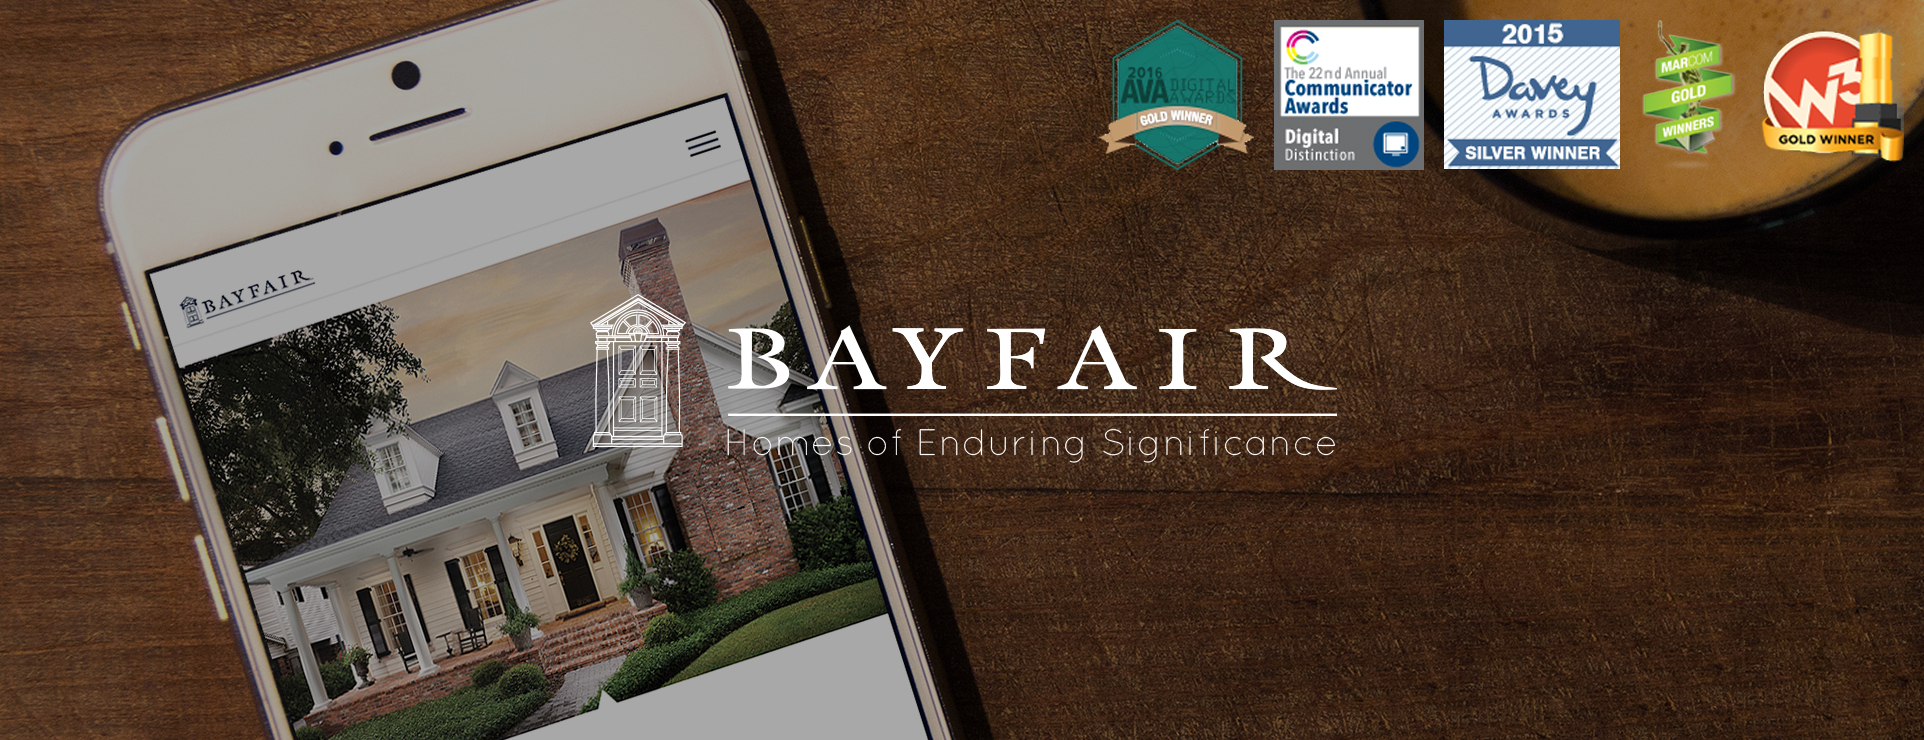 Bayfair_header-1